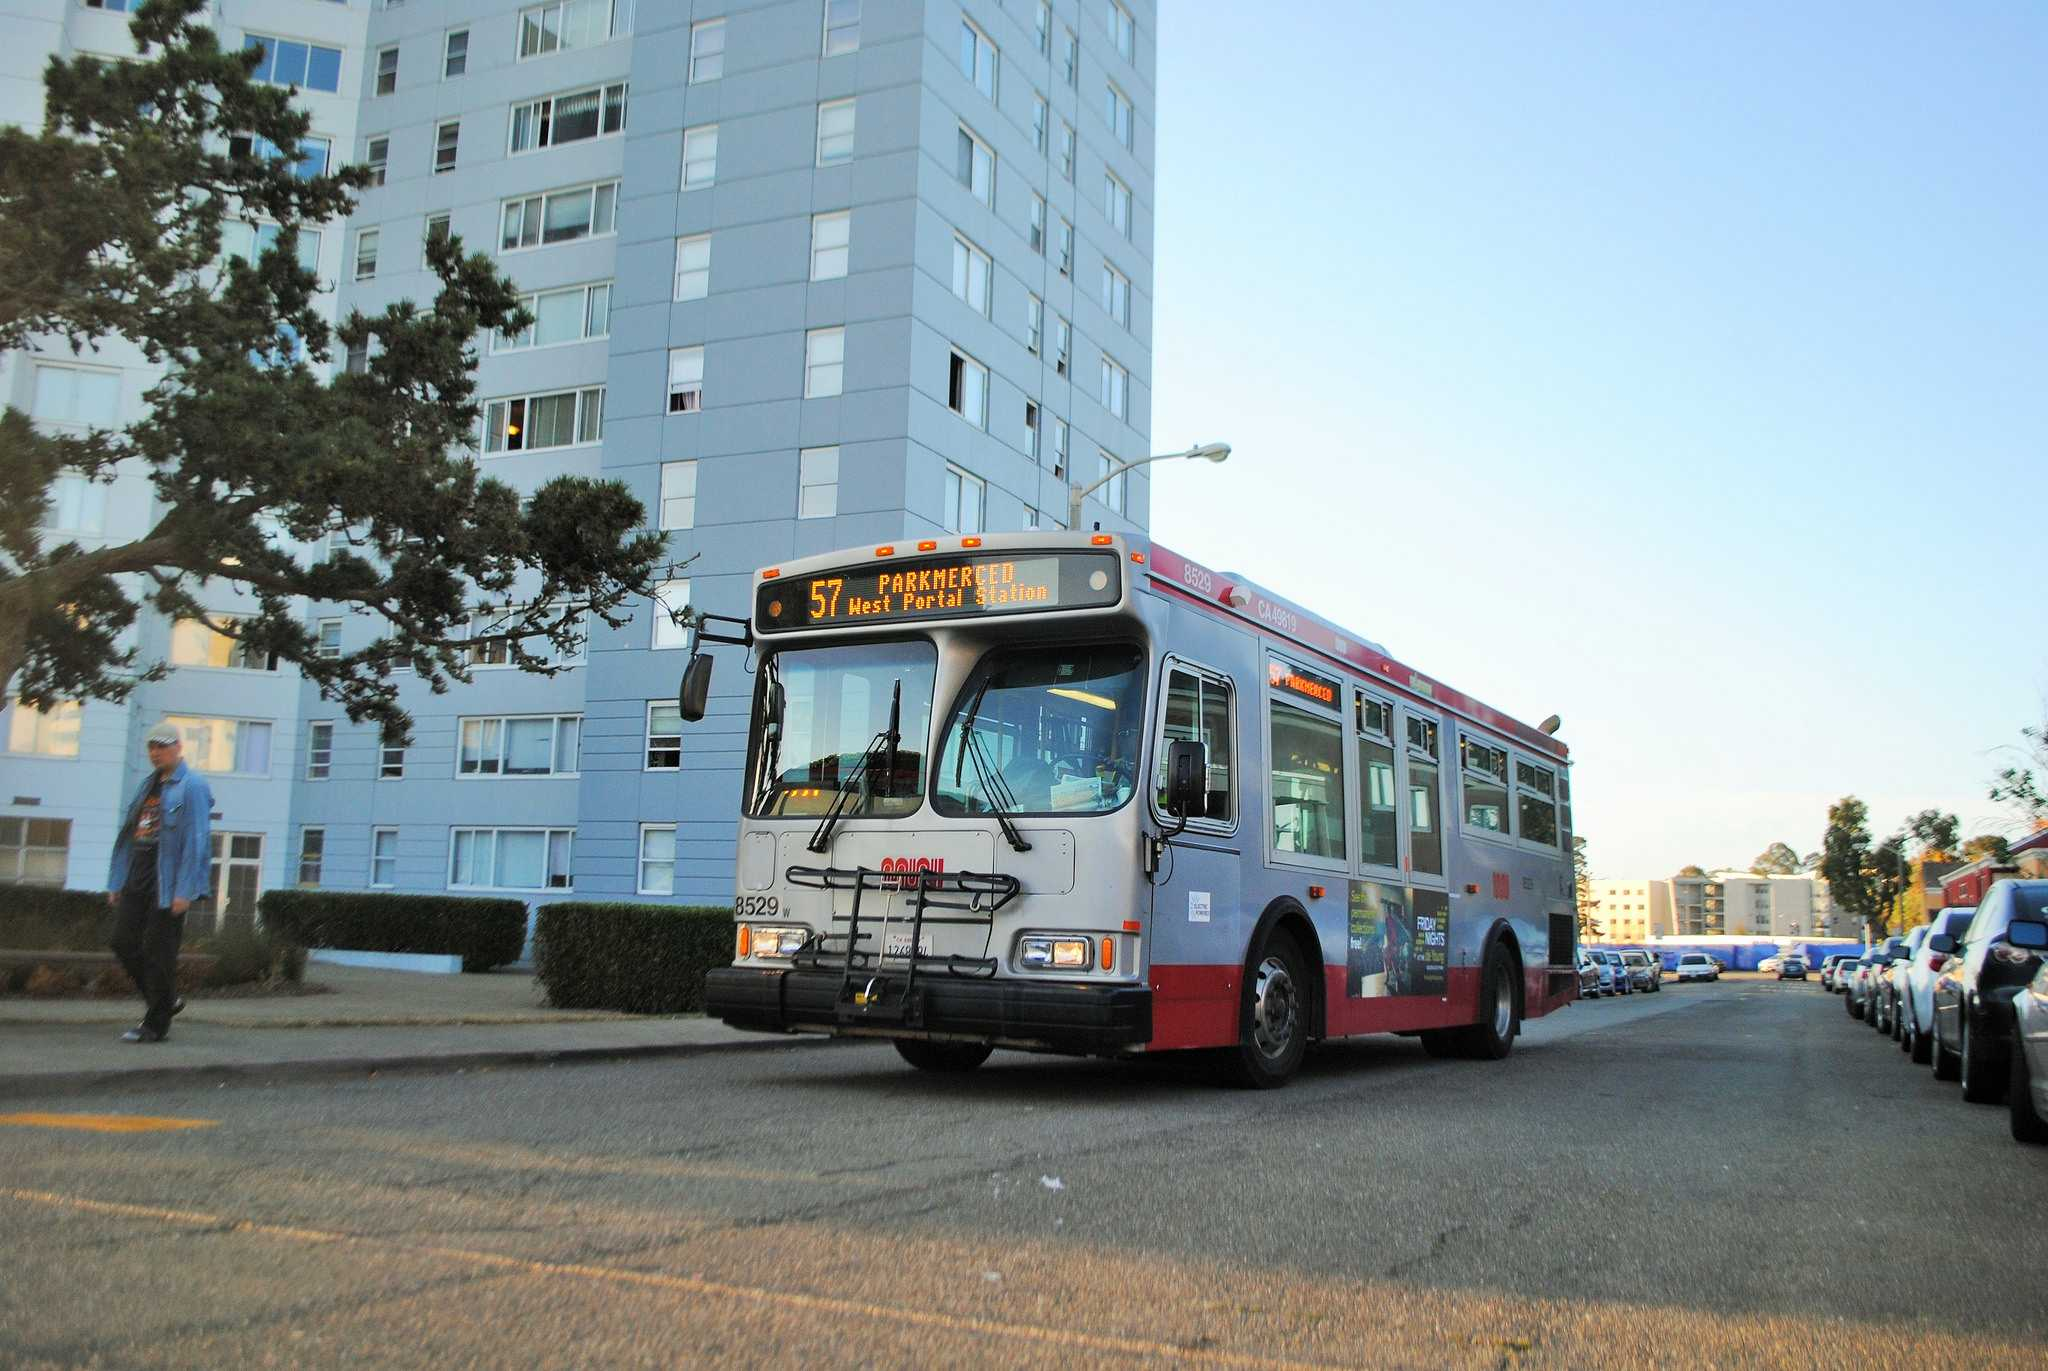 The 57 Park Merced bus approaches its stop on Arballo Drive and Acevedo Ave. Wednesday, Sept. 8, 2015. (Imani Miller / Xpress)